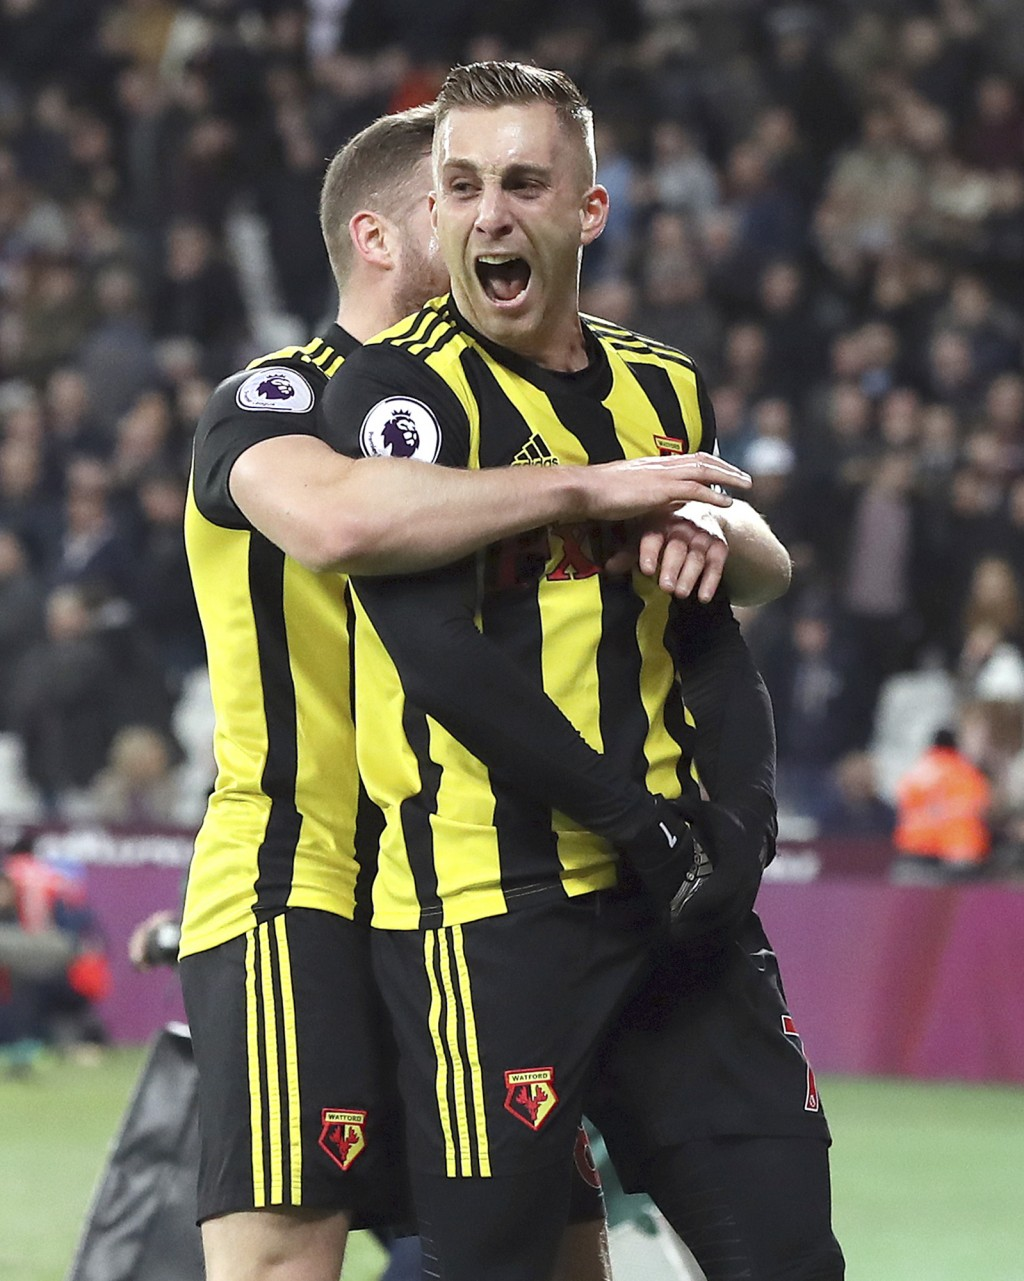 Watford's Gerard Deulofeu celebrates scoring his side's second goal of the game during the Premier League match at London Stadium, Saturday, December